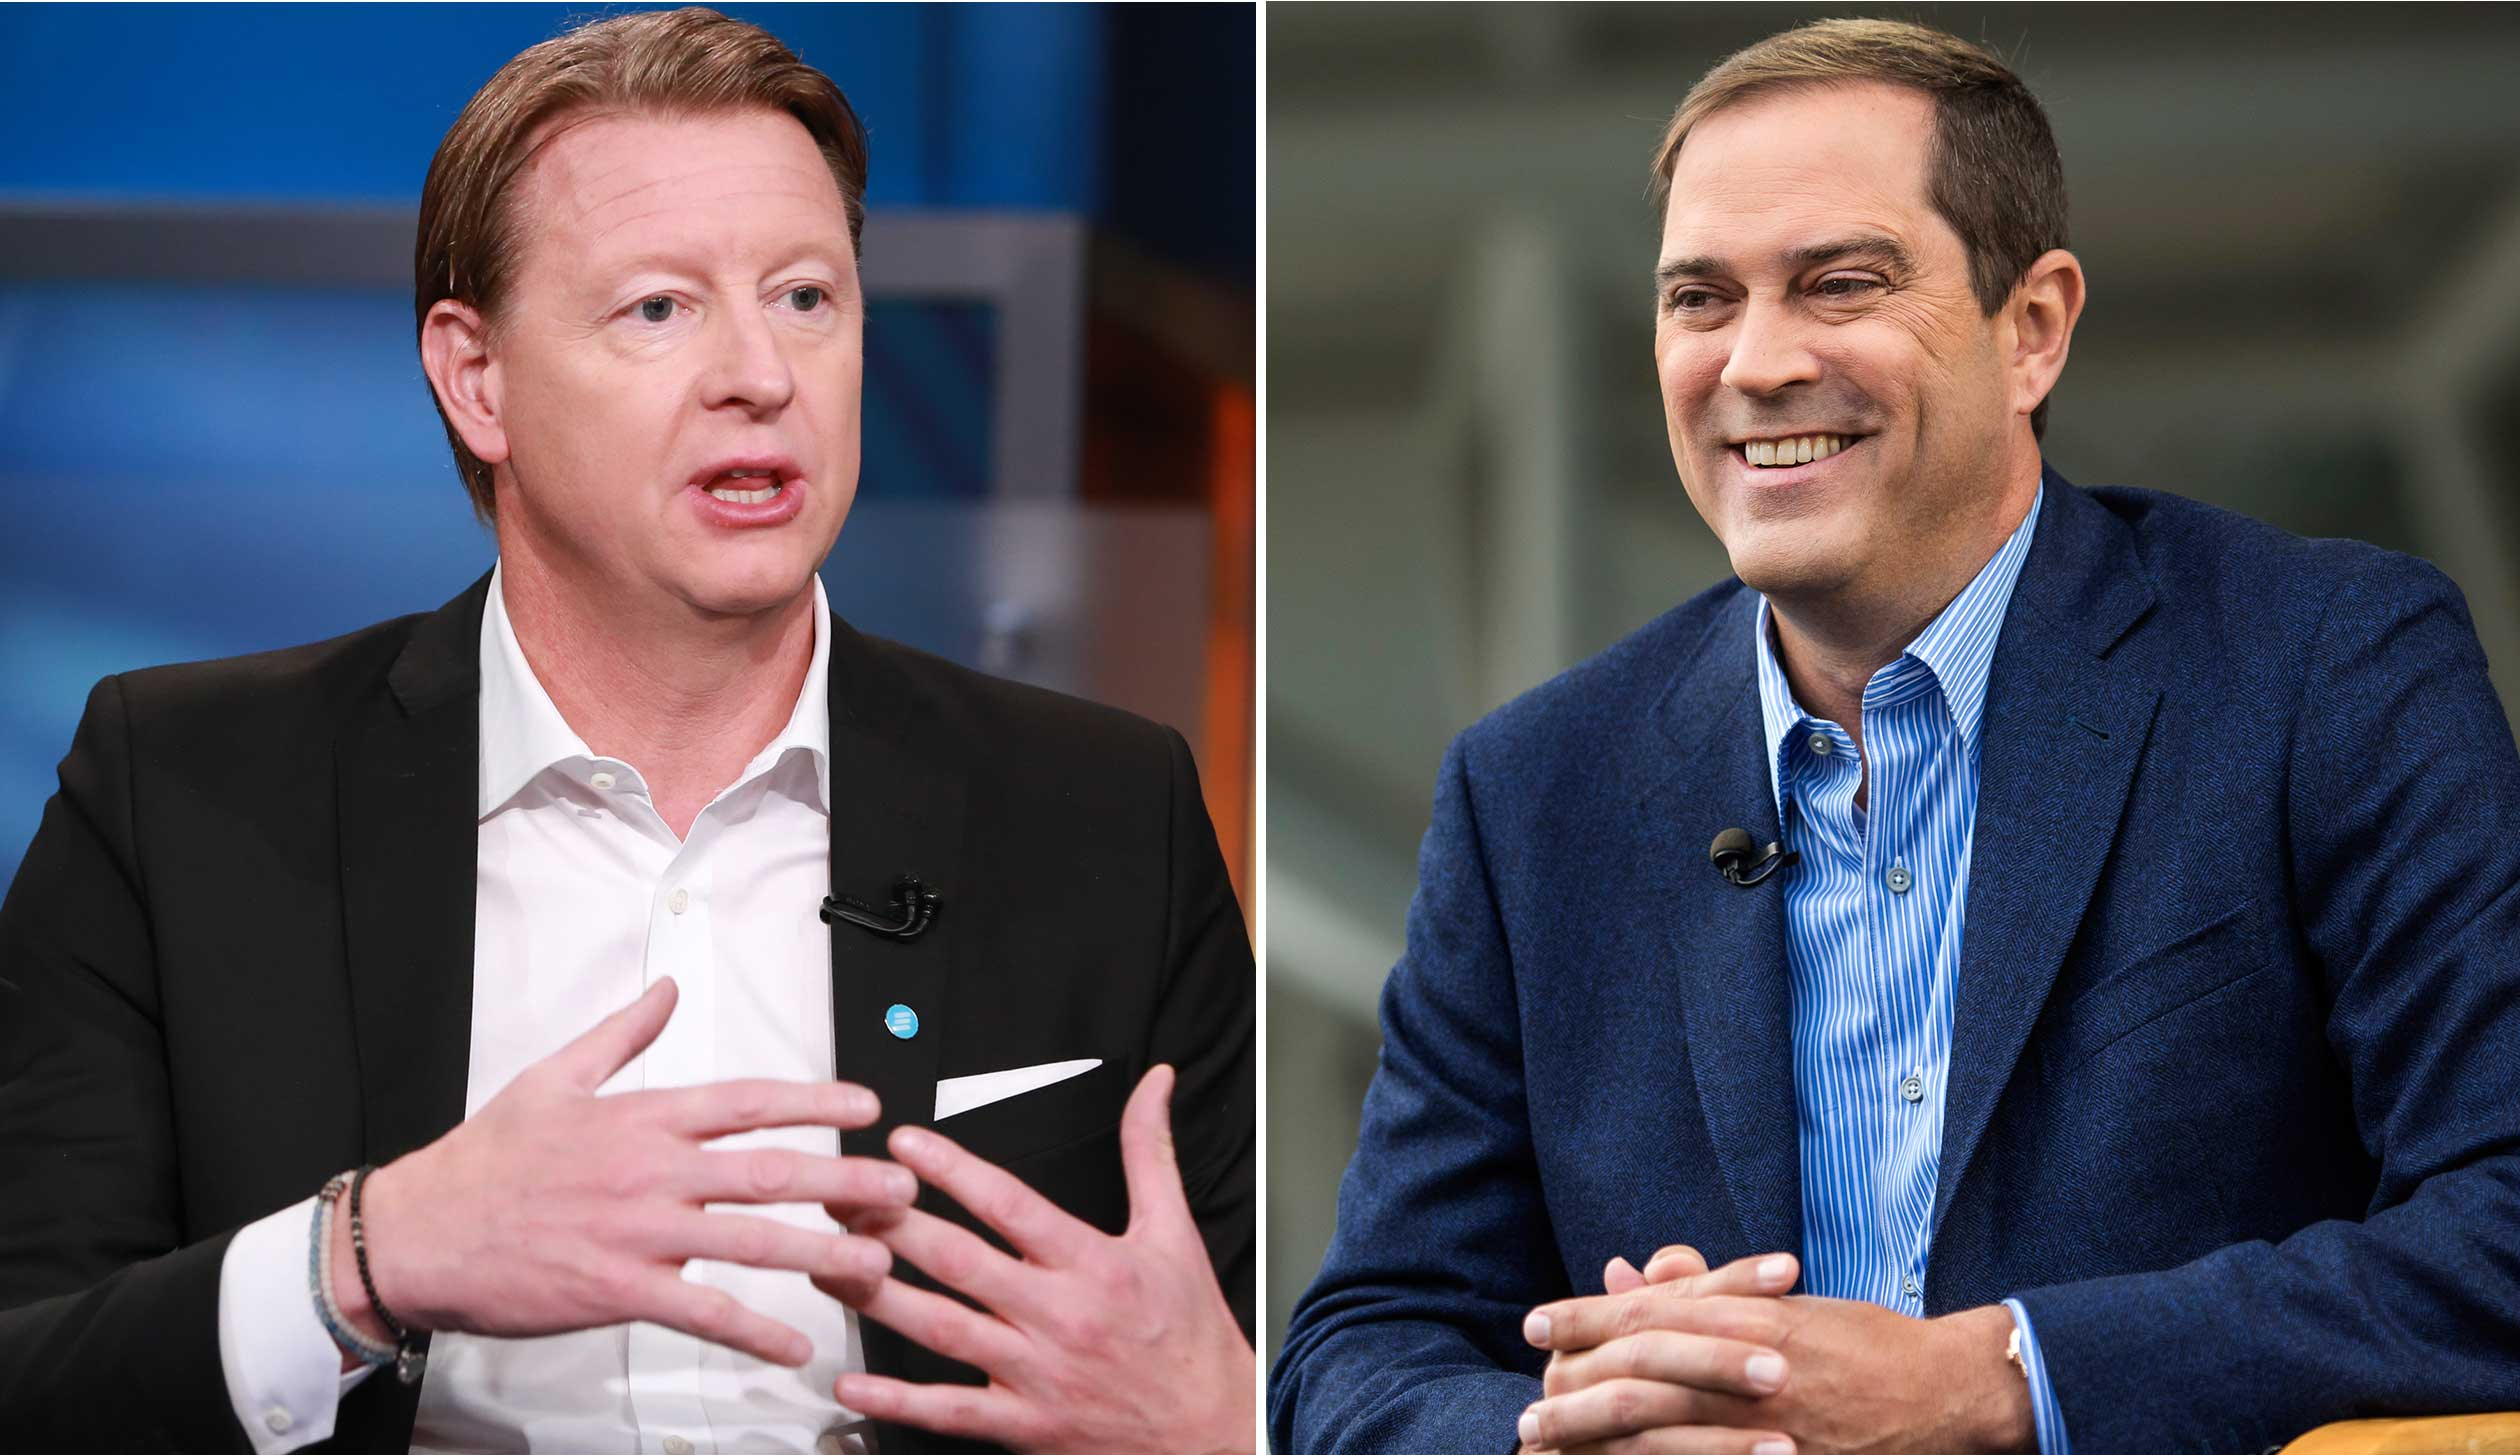 Hans Vestberg, President and CEO of Ericsson, left, and Chuck Robbins, CEO of Cisco.